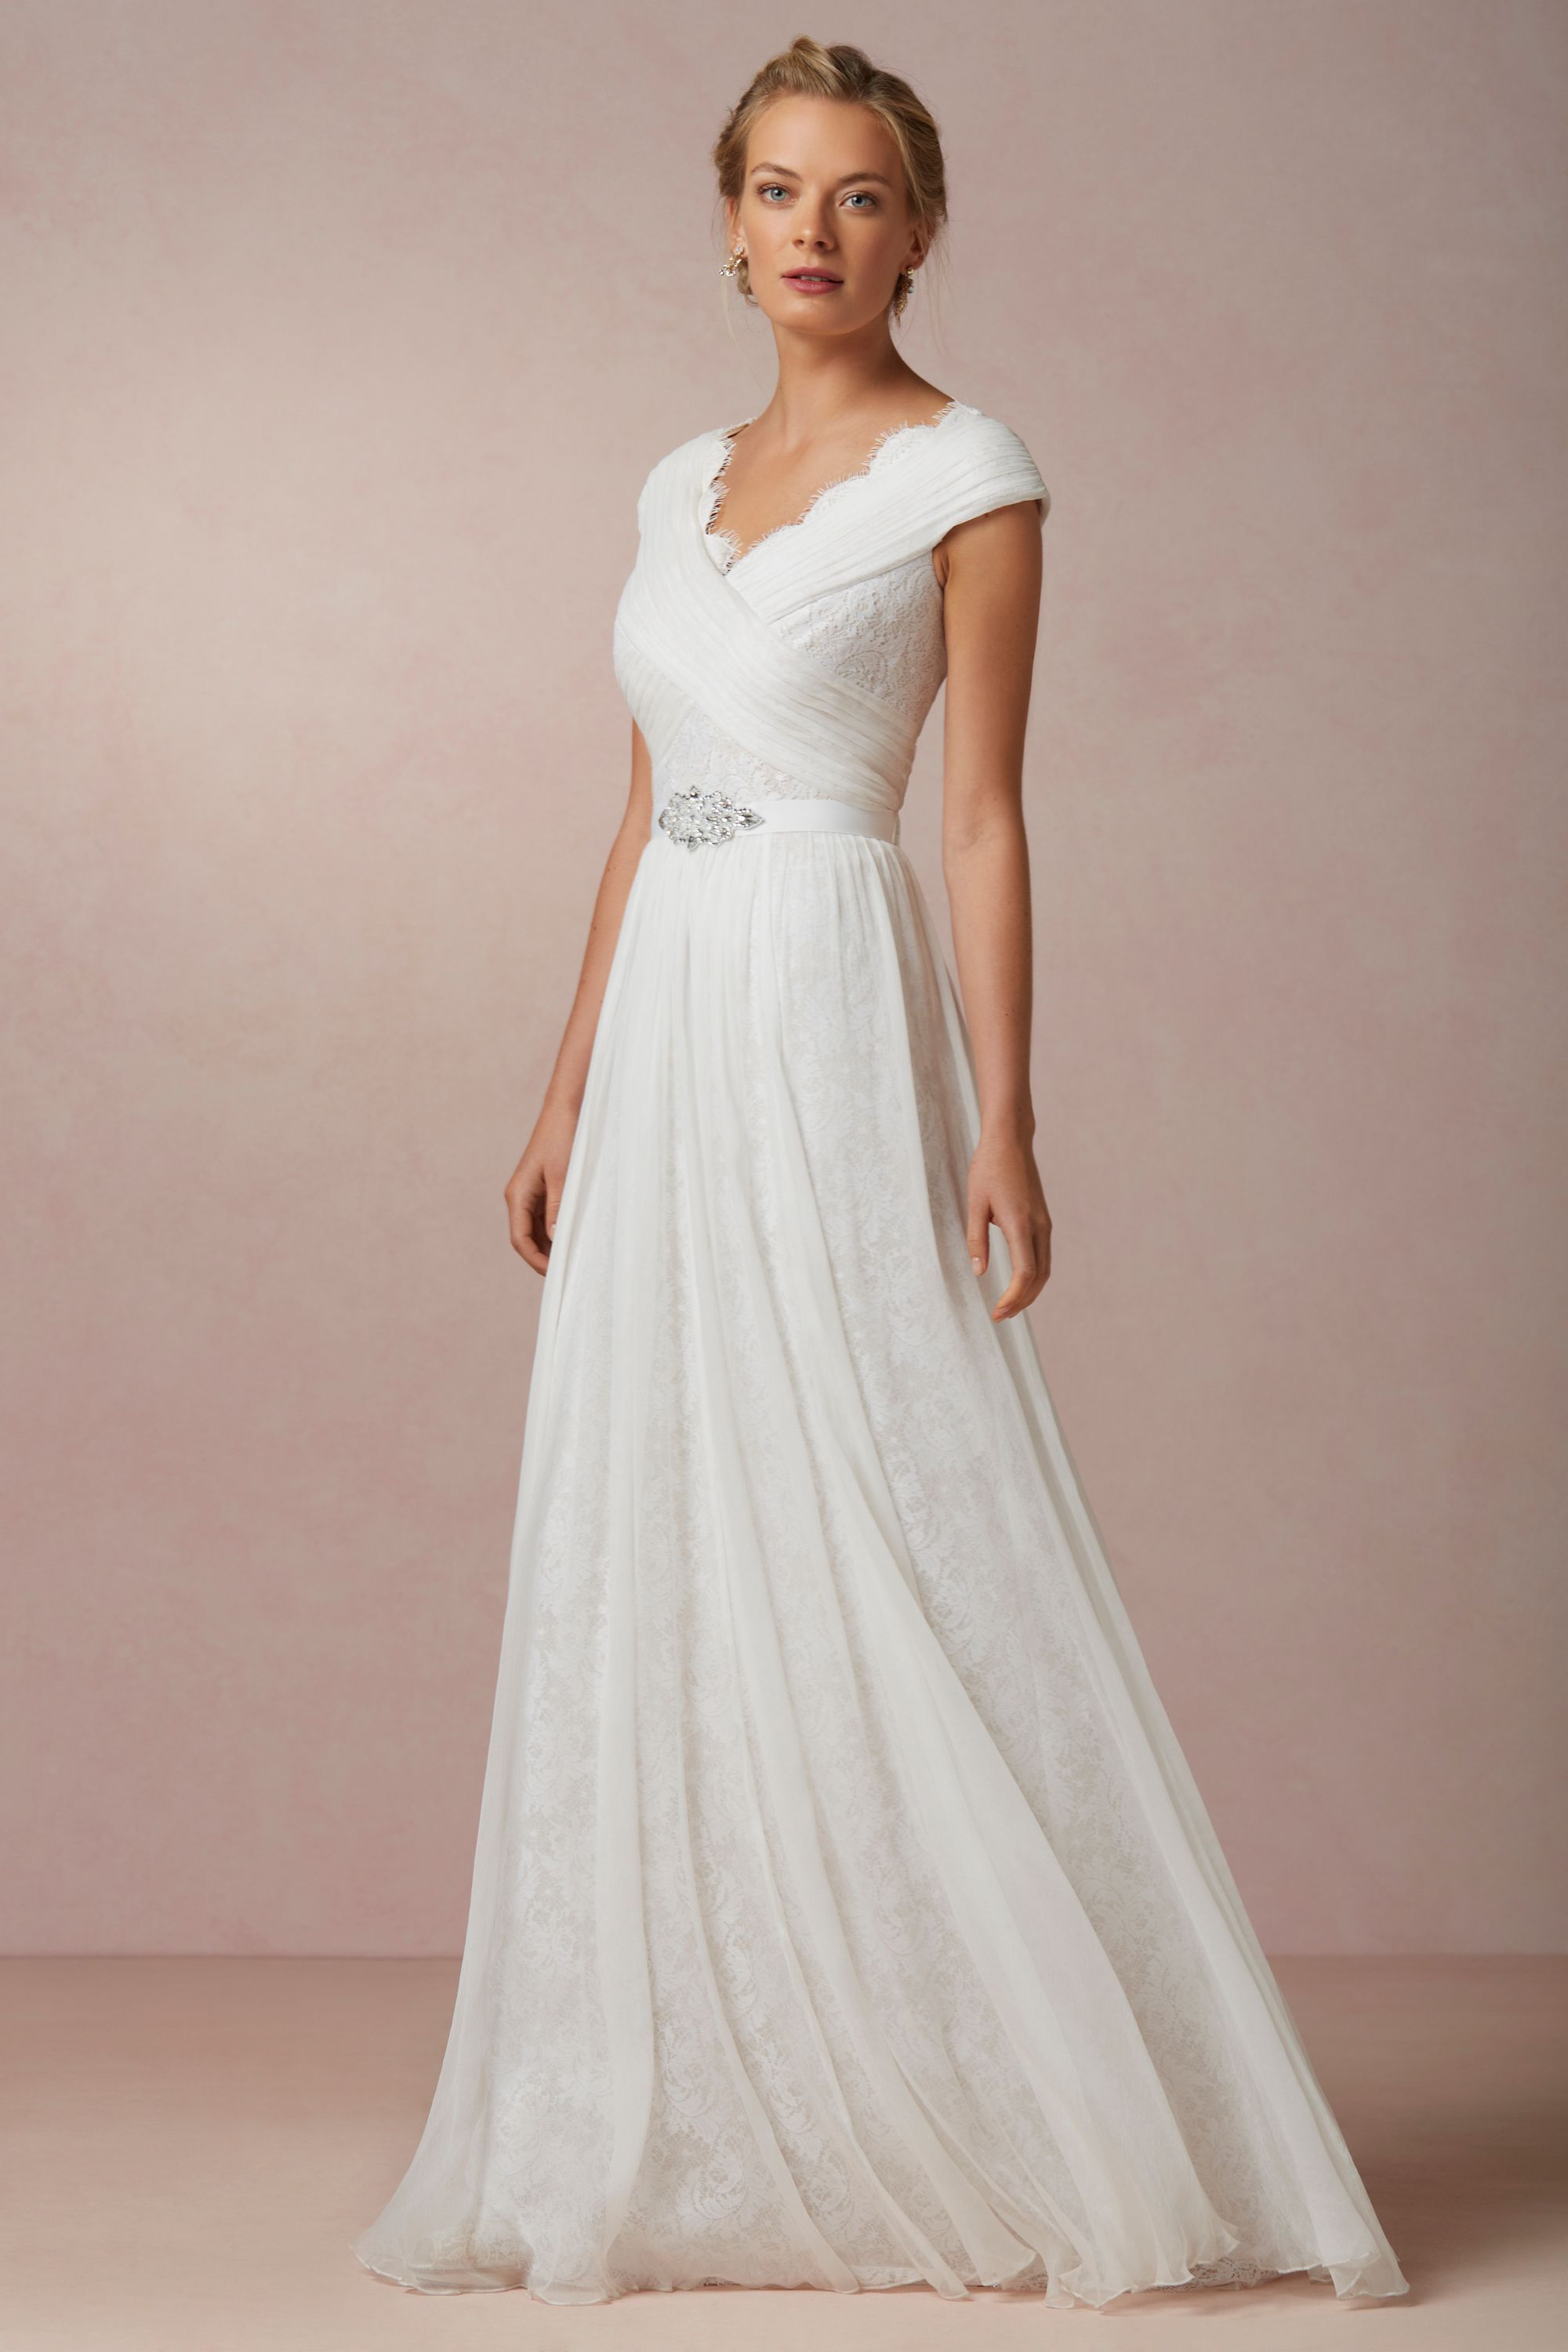 Wedding Dresses Under 200 Wedding Wedding Dresses Wedding